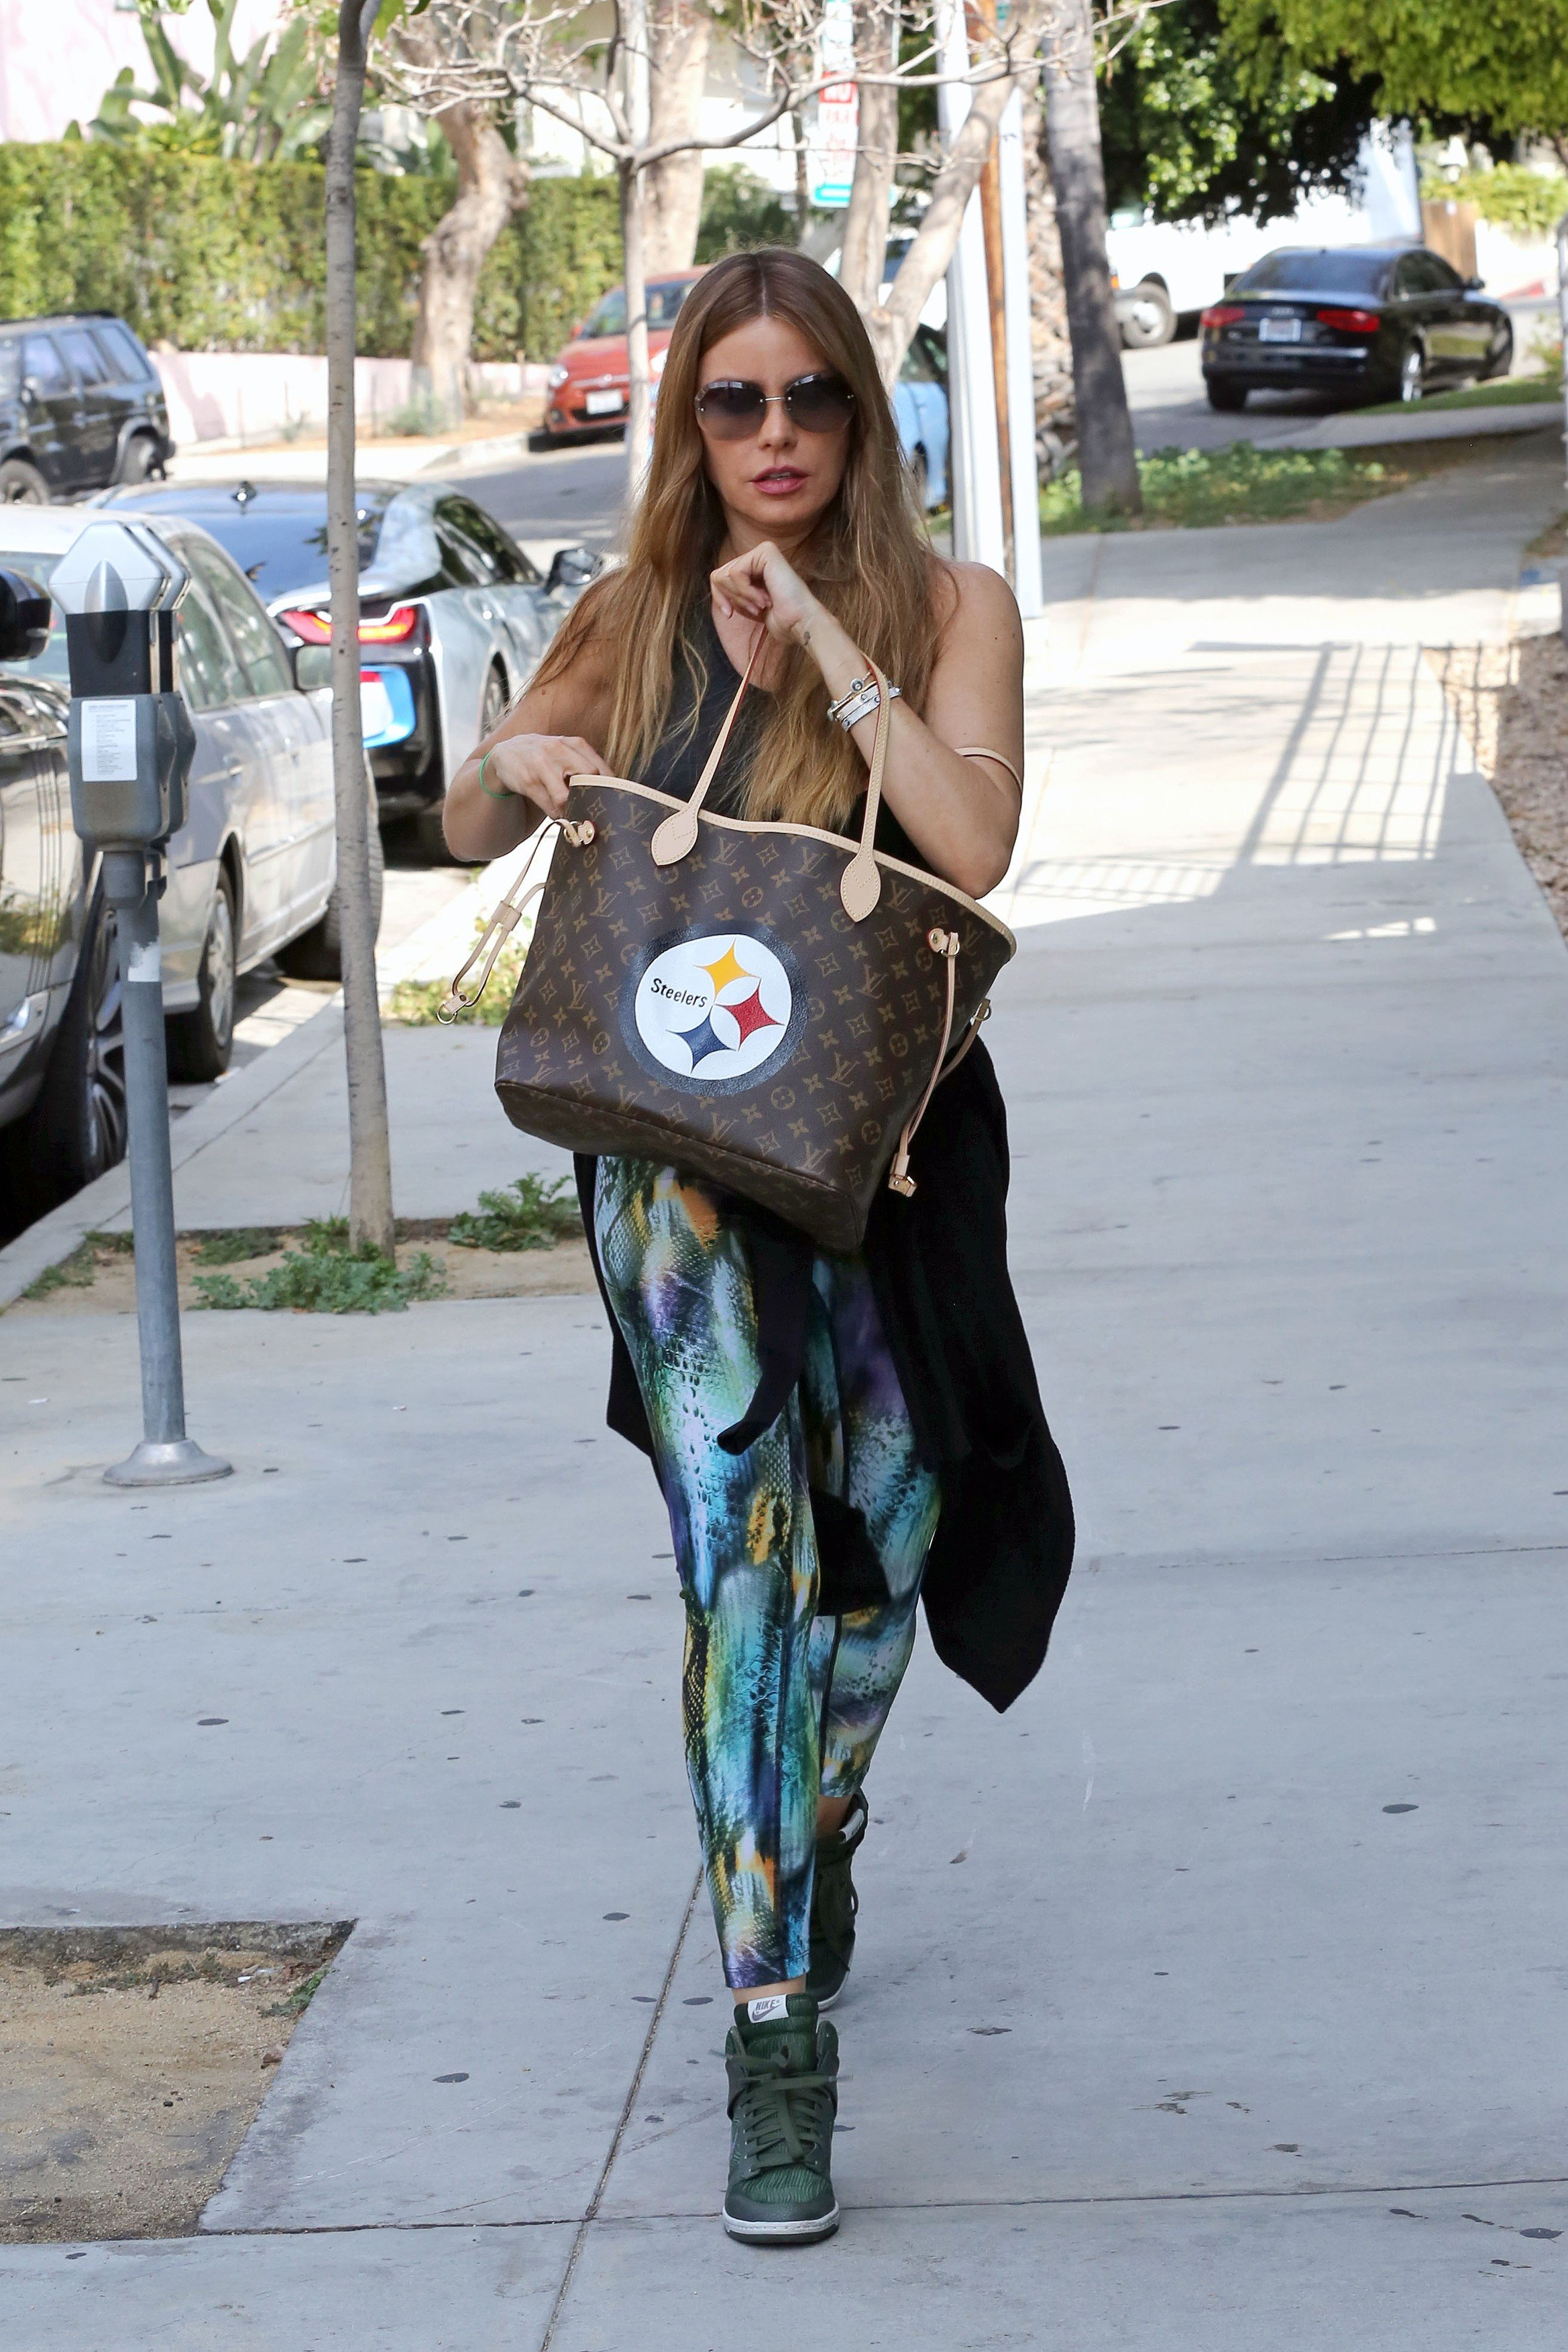 EXCLUSIVE: Sofia Vergara is seen out running errands in her gym clothes following the news of her hiring a private investigator to look in to her ex fiancé Nick Loeb. The actress and her ex have been locked in a legal battle over embryos since 2015.  Sofia was sporting a custom made Pittsburgh Steelers Louis Vuitton bag and a colorful pair of leggings. 28 Apr 2018, Image: 370036352, License: Rights-managed, Restrictions: World Rights, Model Release: no, Credit line: Profimedia, Mega Agency